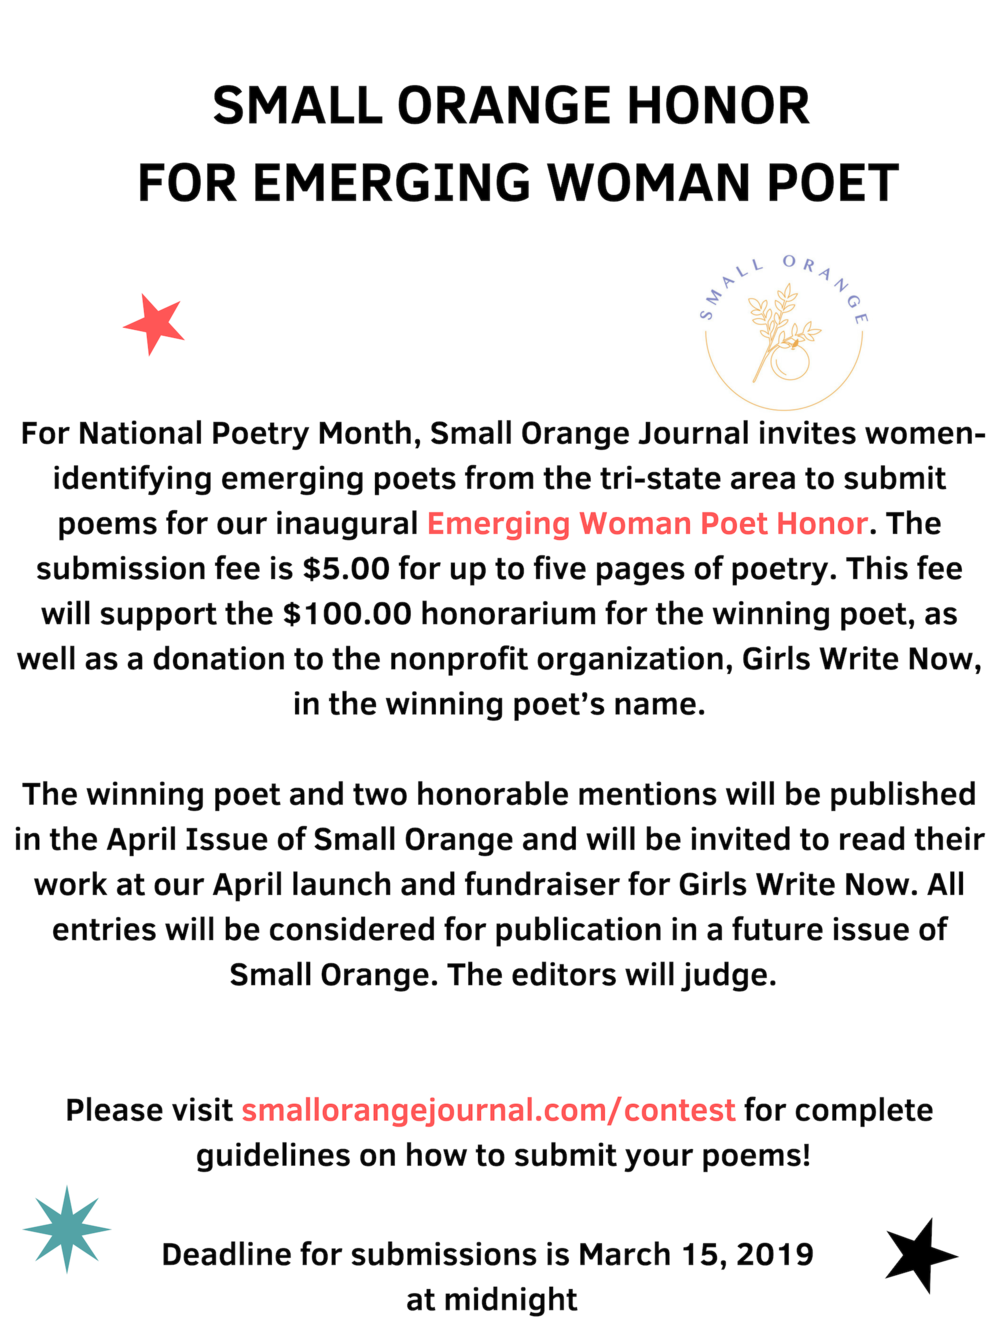 SMALL ORANGE HONOR FOR EMERGING WOMAN POET (1).png